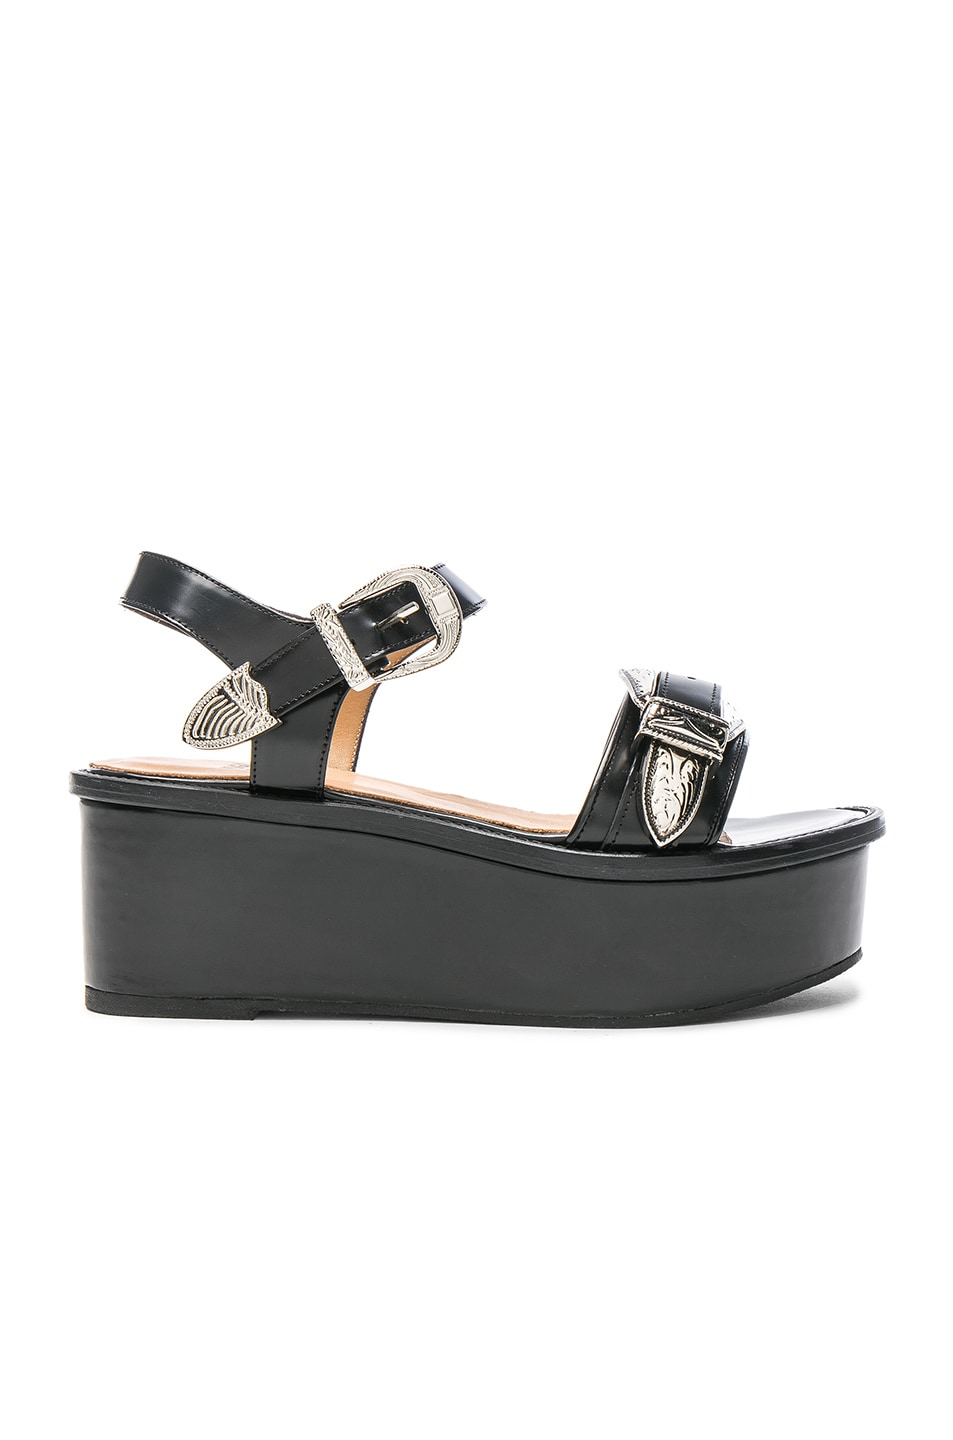 Image 1 of TOGA PULLA Buckle Leather Flatforms in Black Polido